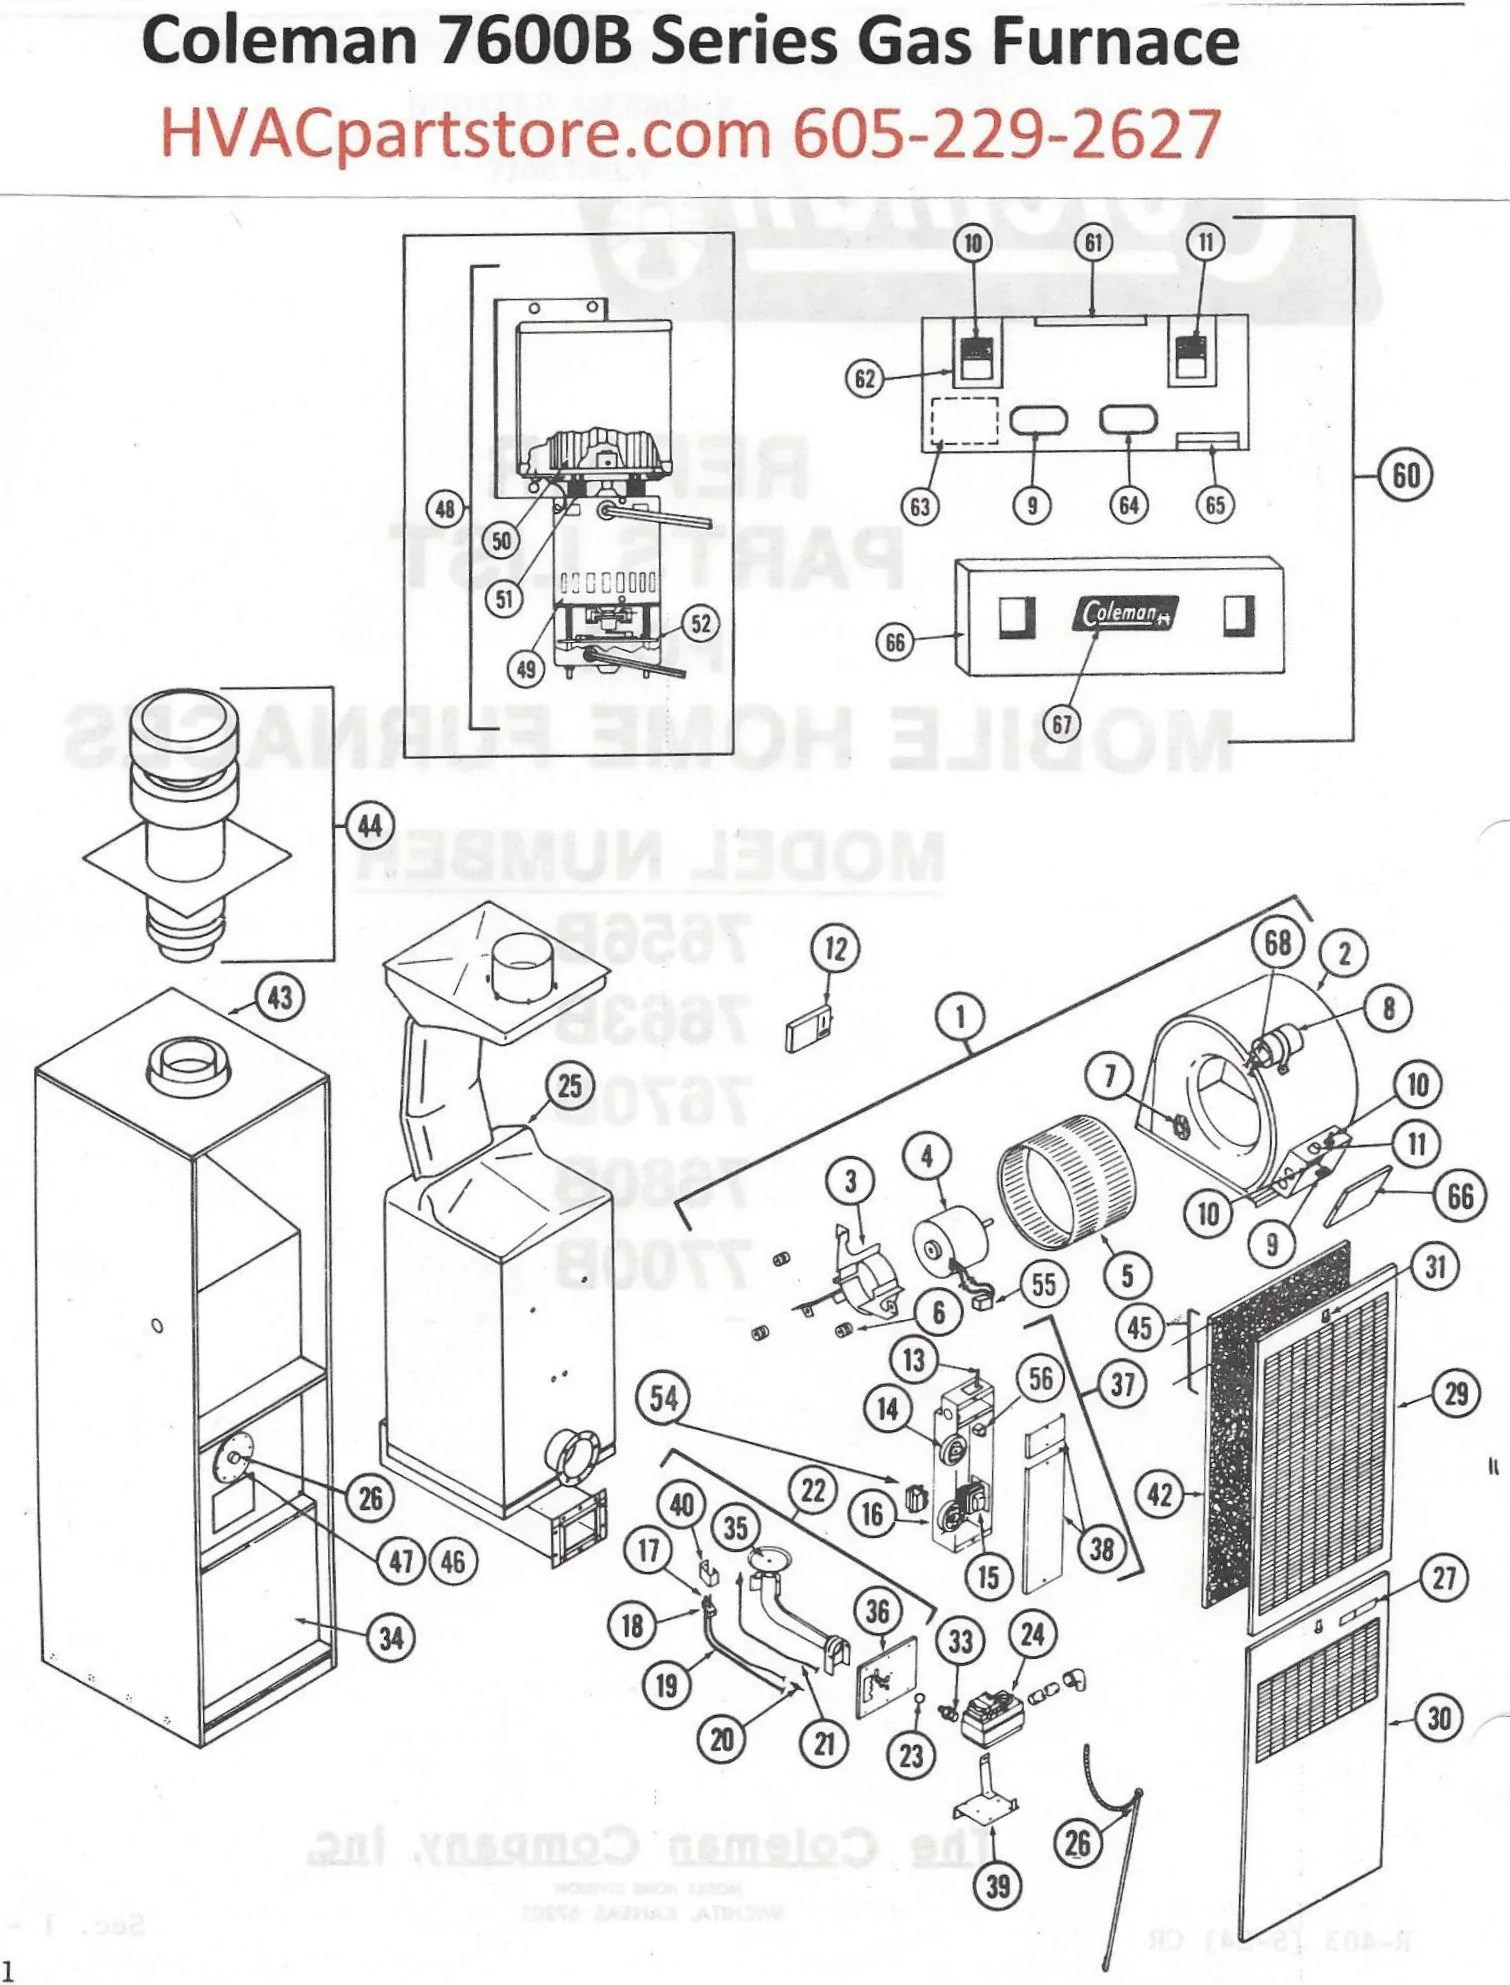 hight resolution of 7680b856 coleman gas furnace parts u2013 hvacpartstore trailer wiring diagram coleman gas furnace 7680b856 coleman